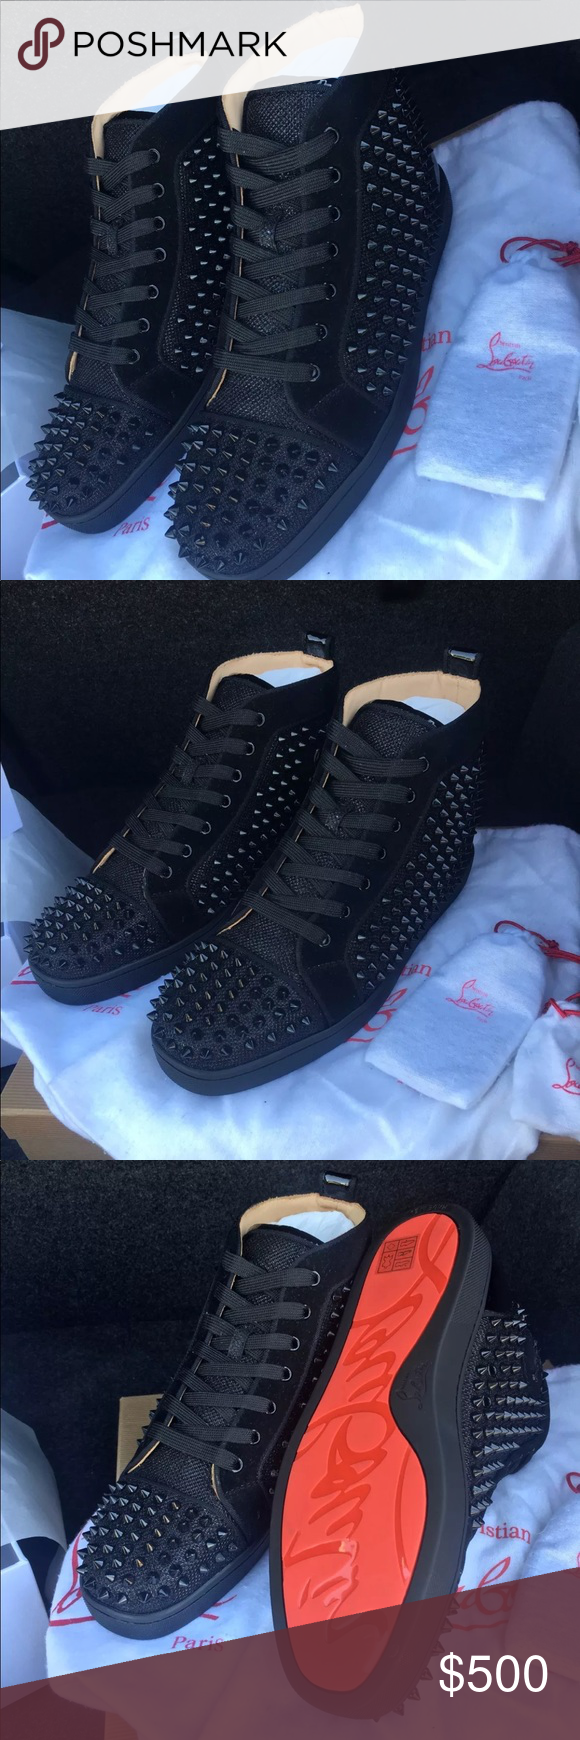 bb4d1f8ad426 Christian Louboutin Mens Sneakers Orlato Black Authentic men s louboutin  spike sneakers